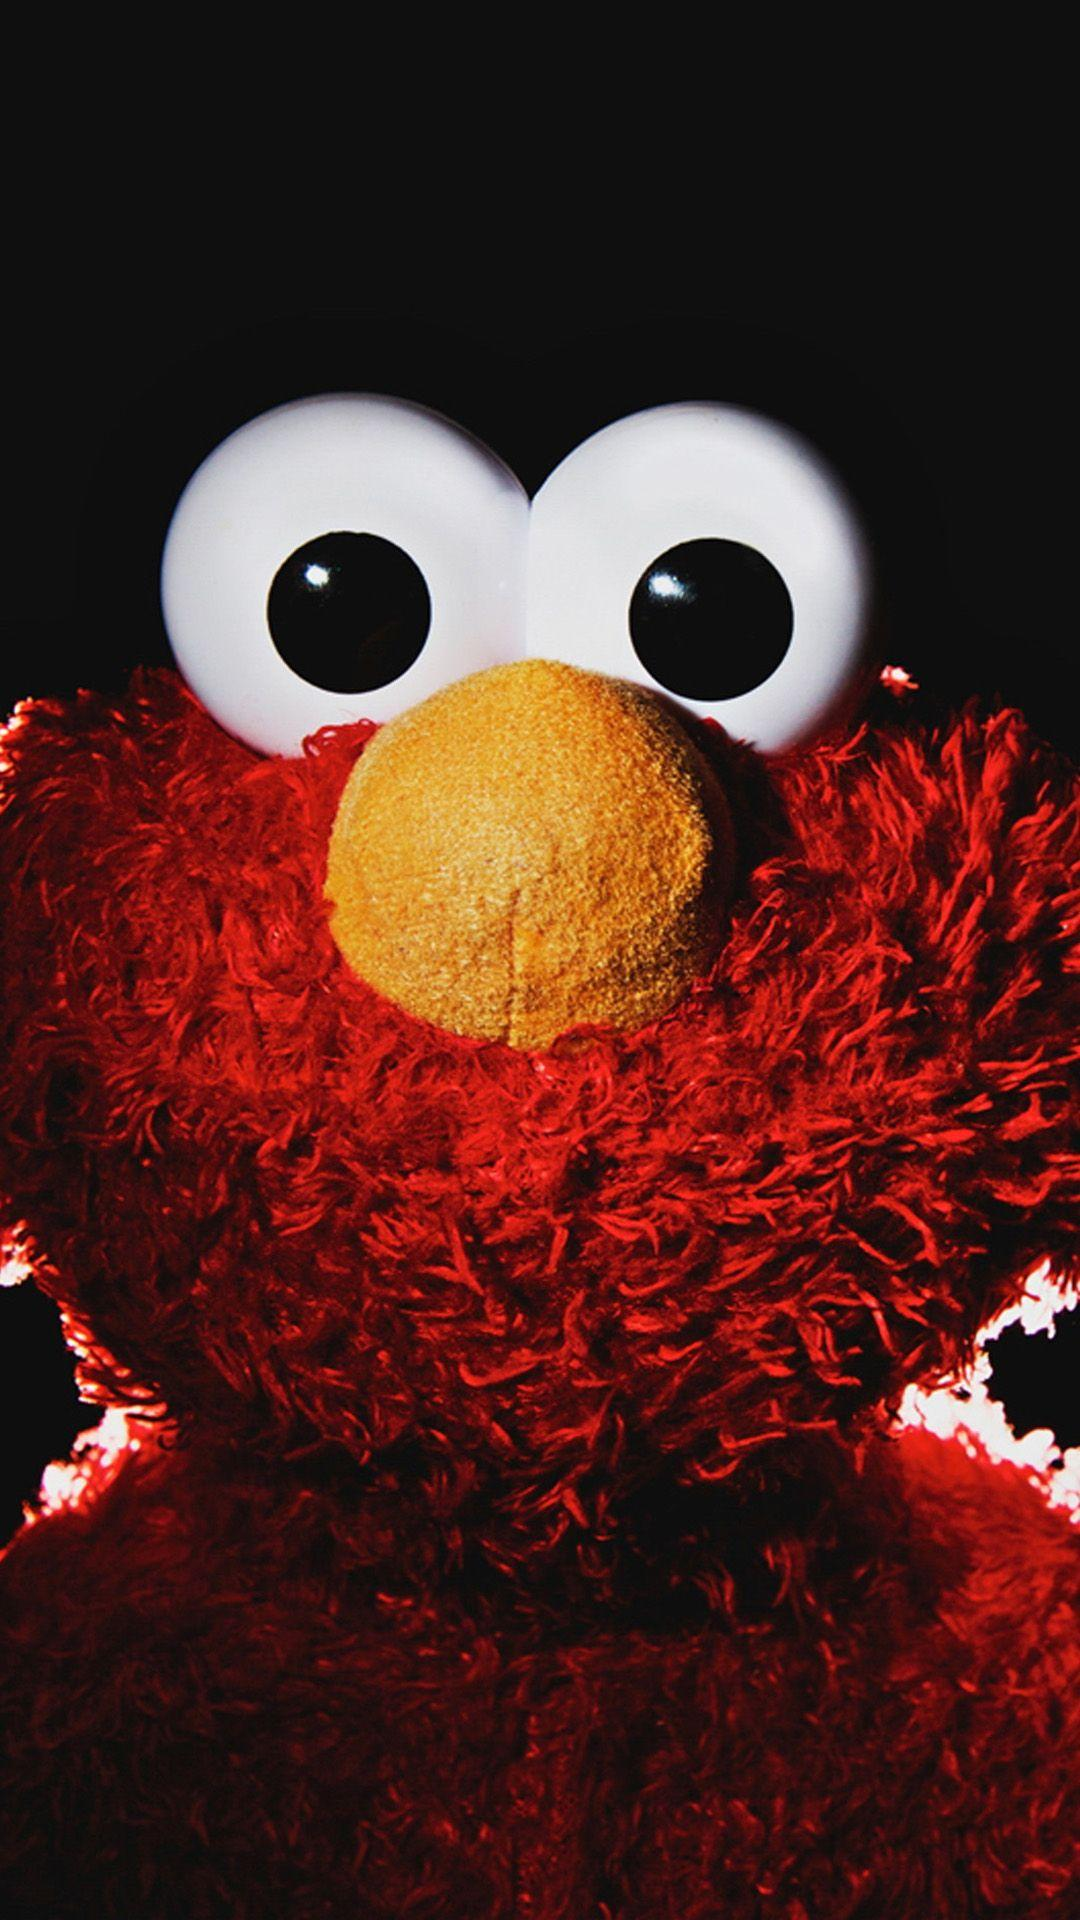 Wallpapers Elmo Tumblr Wallpaper Cave